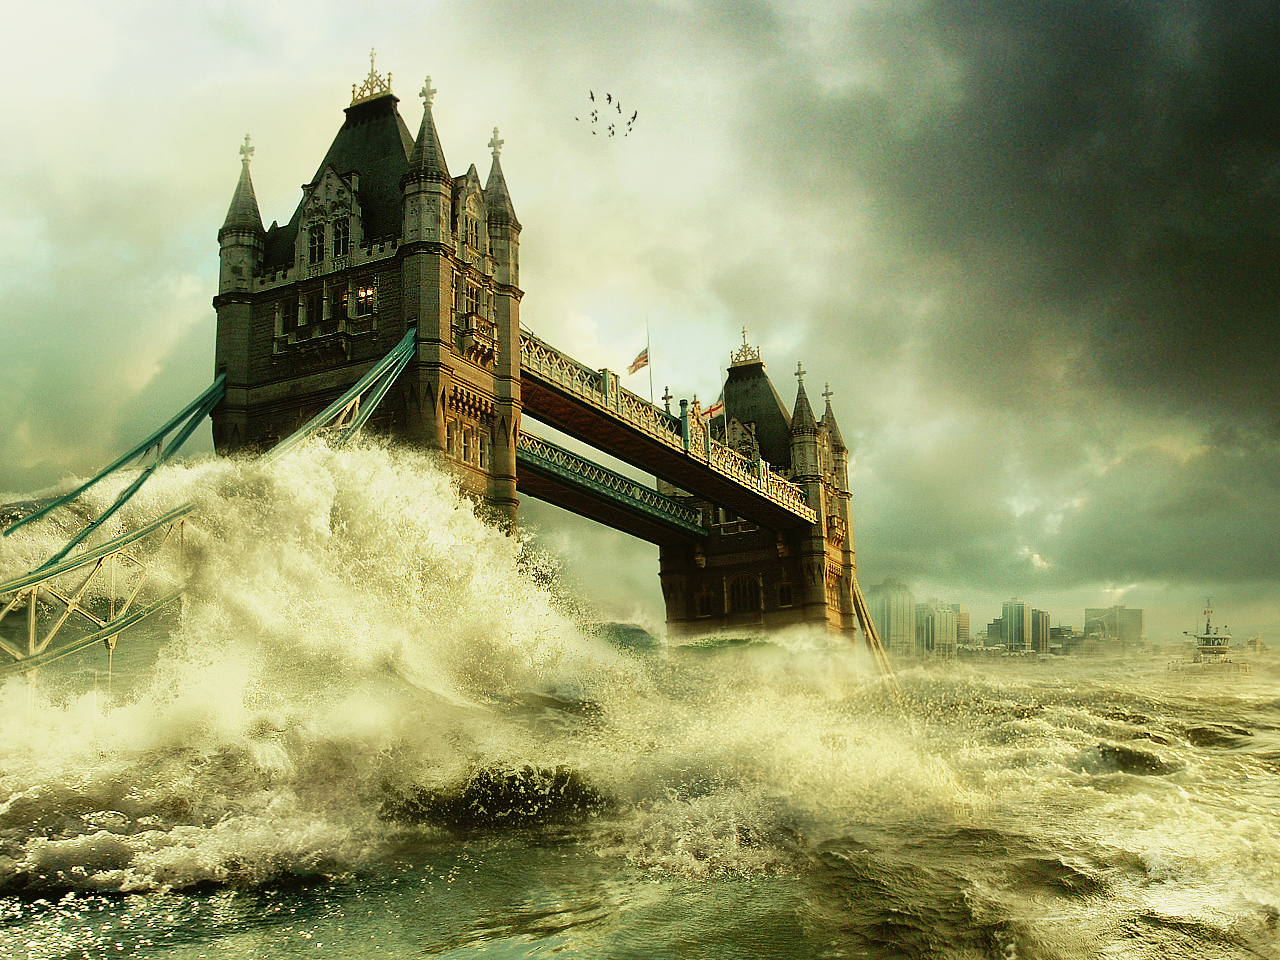 http://2.bp.blogspot.com/-AO1v08Y58Fk/TvXGJceqY0I/AAAAAAAAAvo/oyTdErP0yic/s1600/Tower_Bridge__by_phyzer.jpg